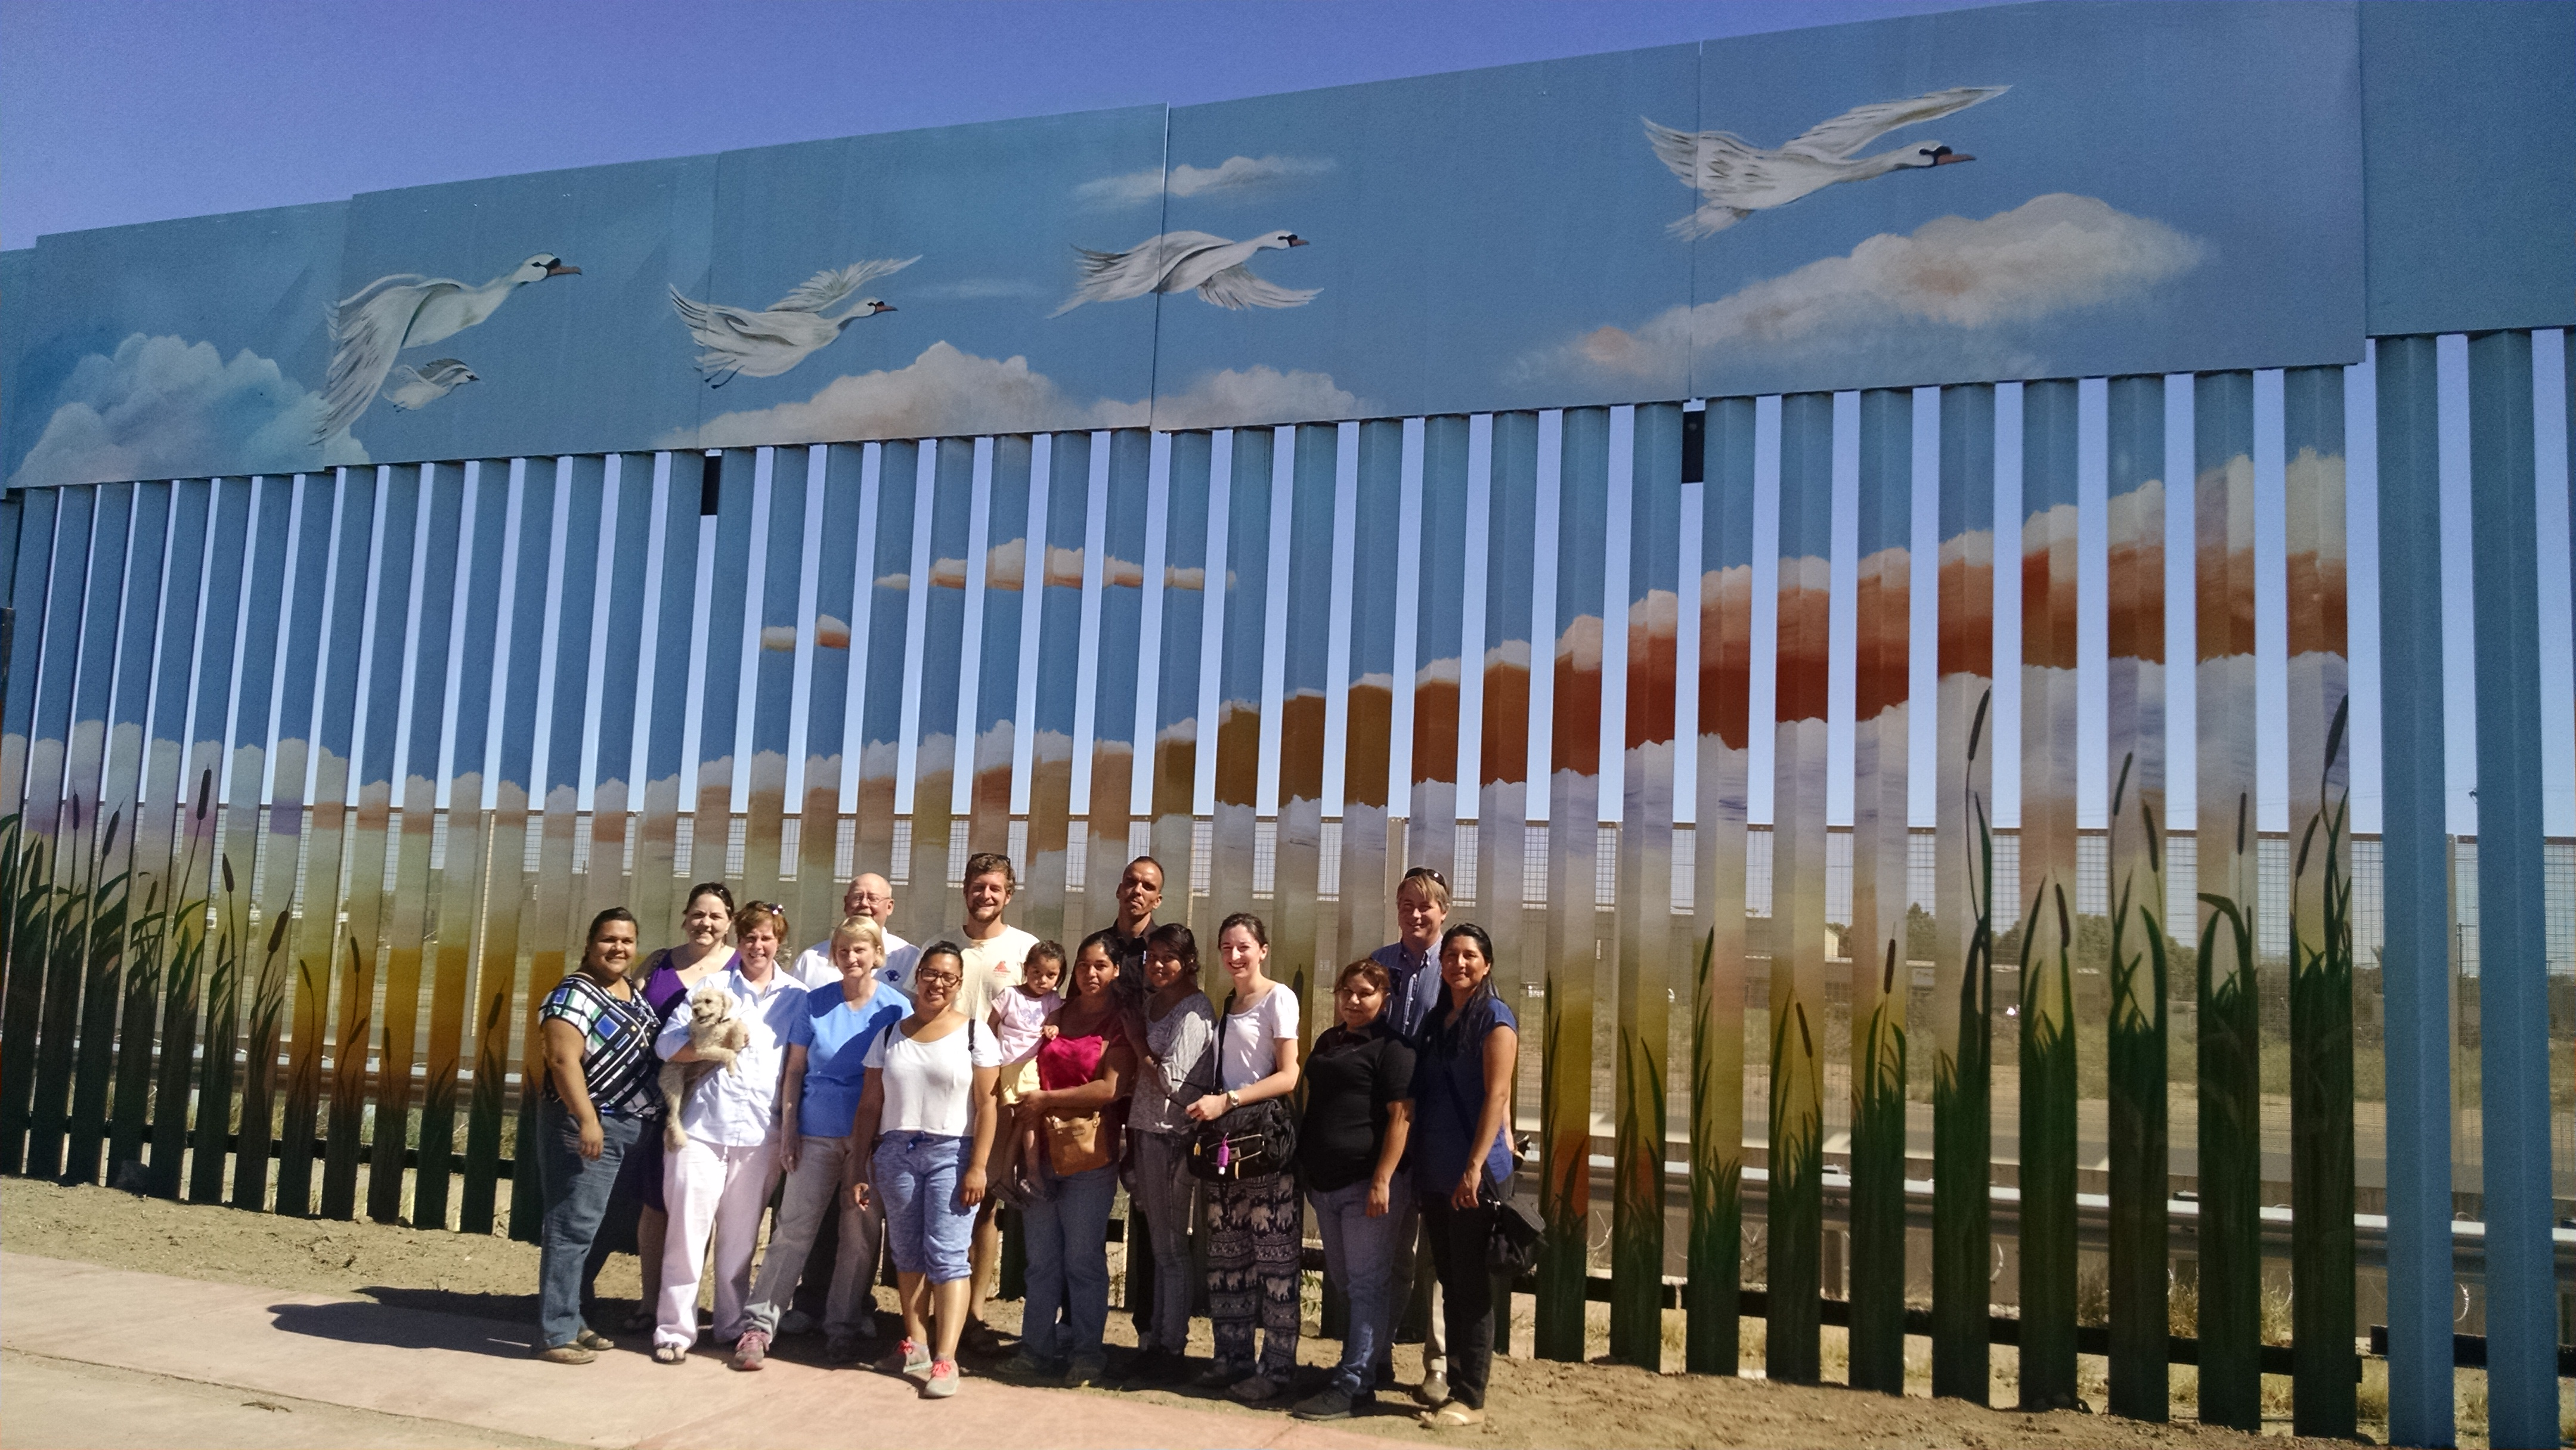 Delegation from Central PC Atlanta with our partners from the drug rehab center after biblical reflections at the wall